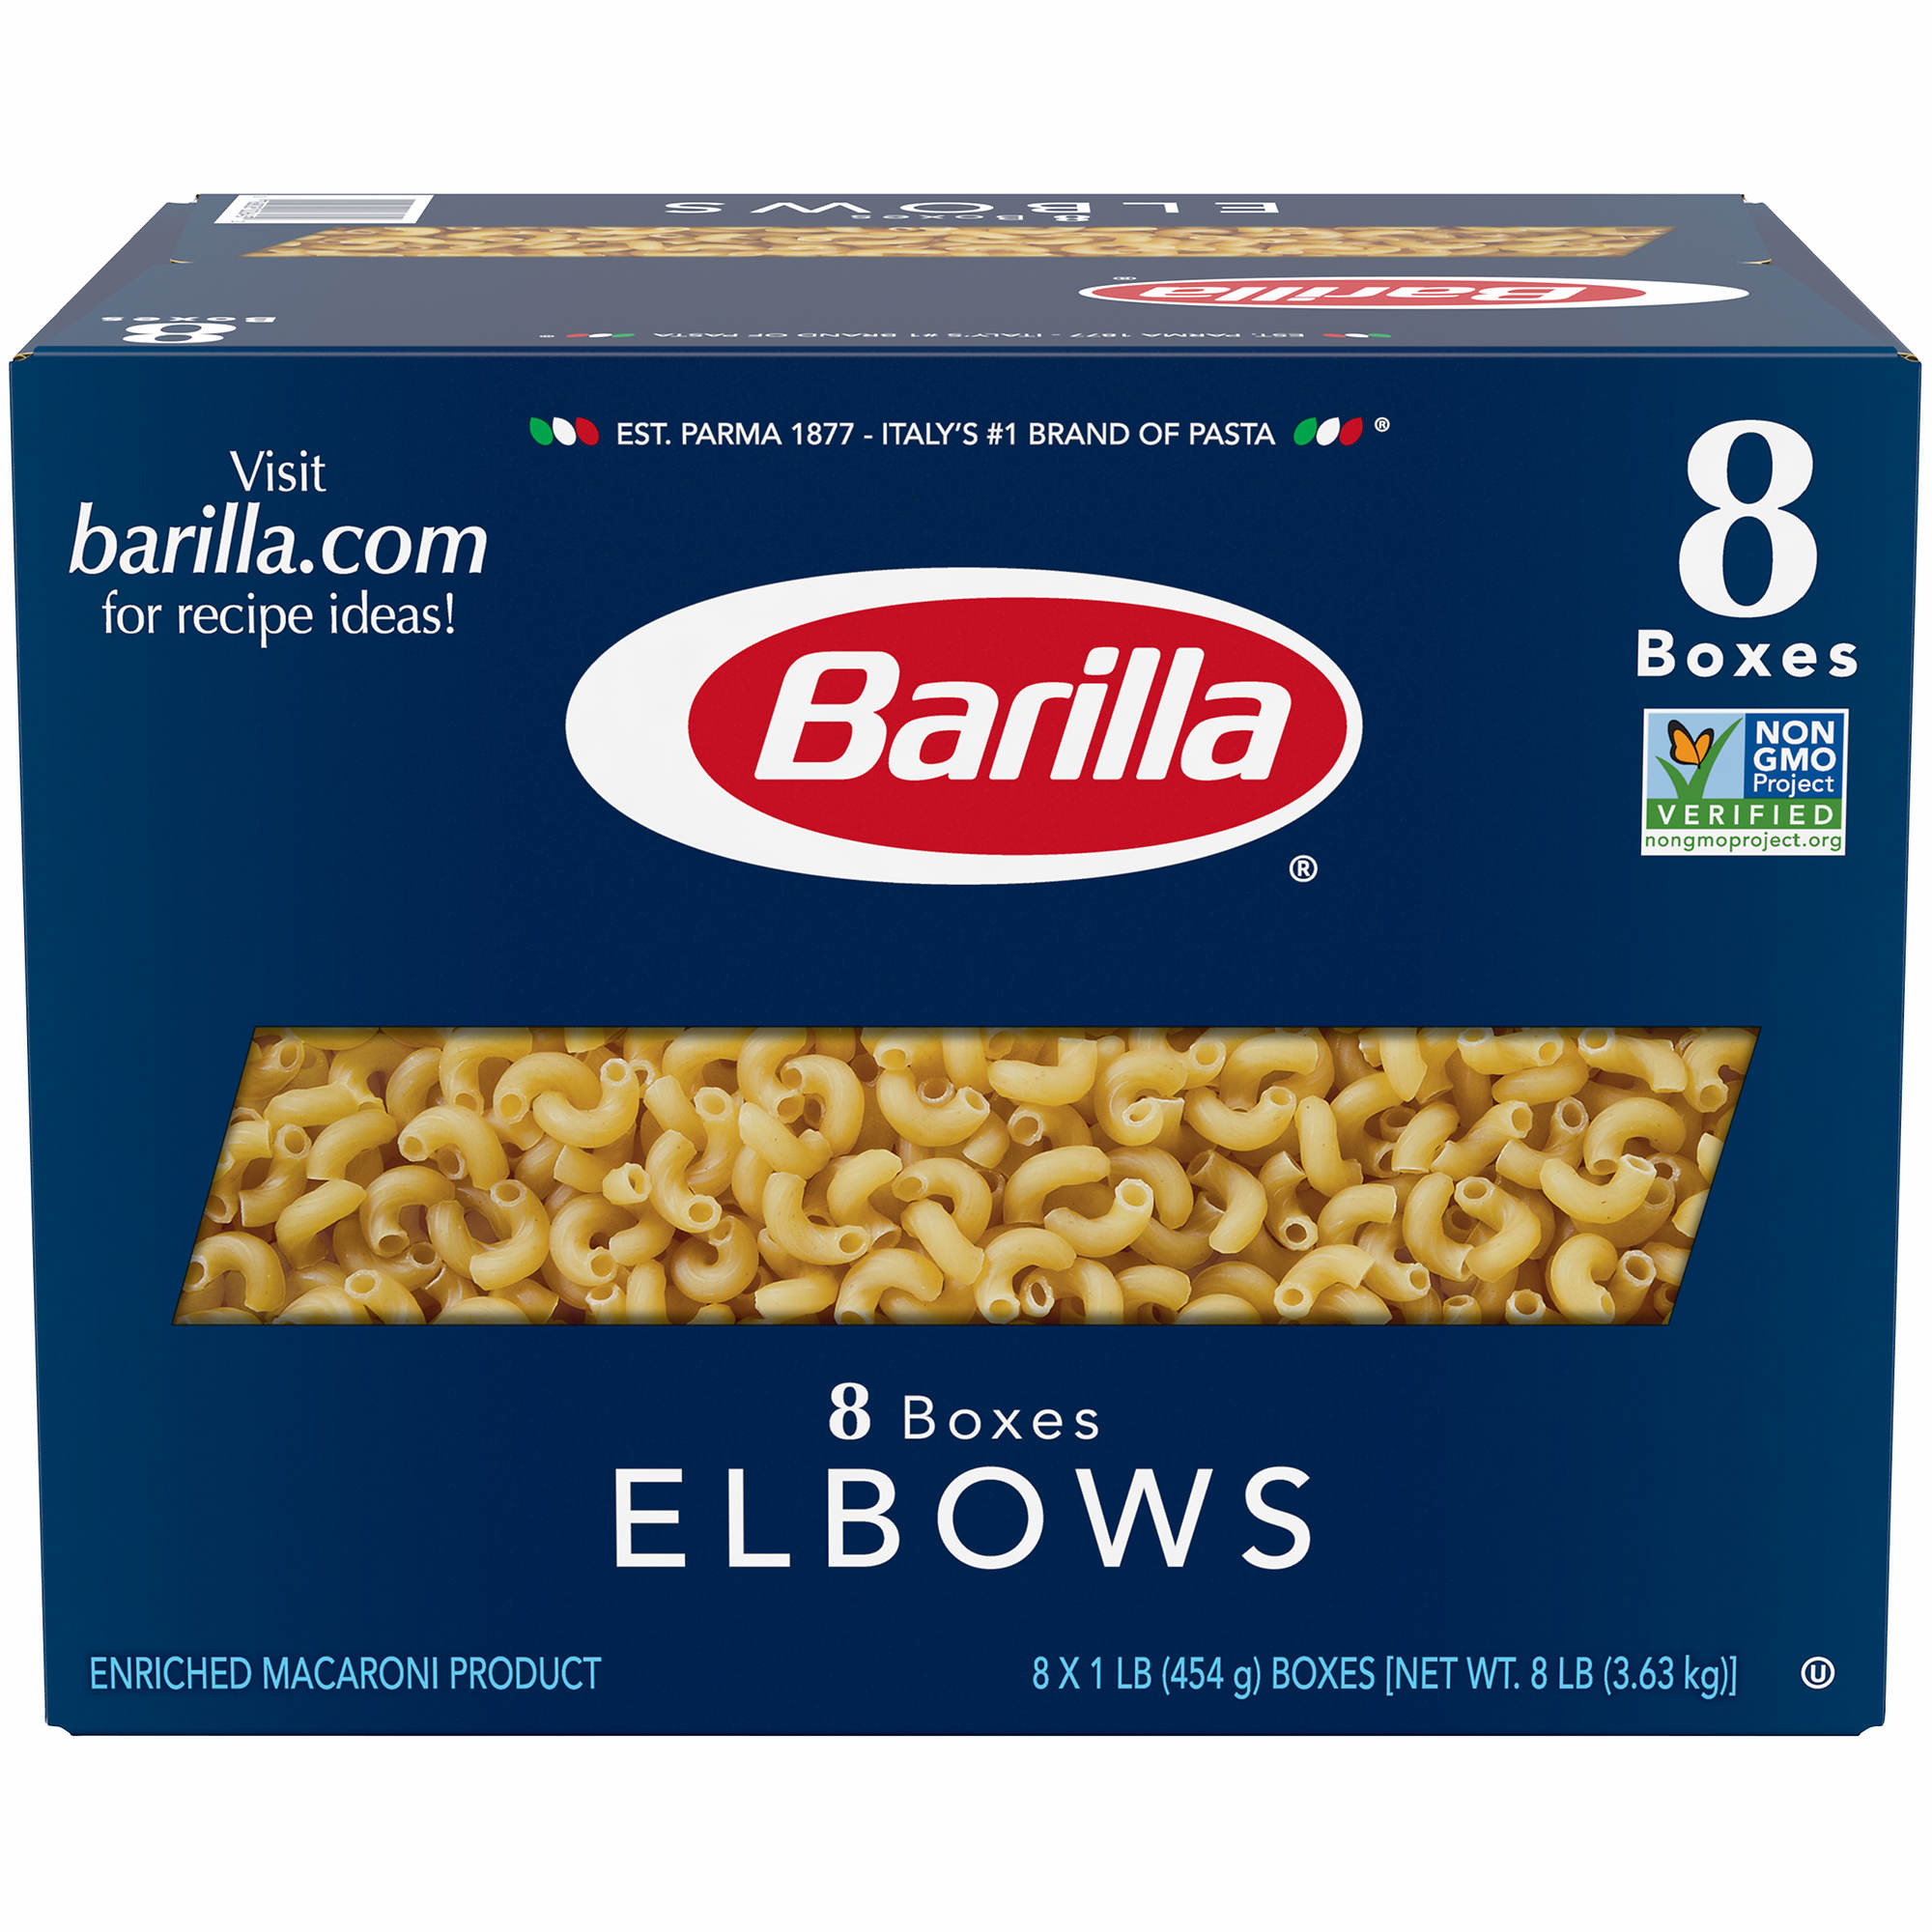 barilla elbows 1 lbs 8 ct bj s whole club barilla elbows 1 lbs 8 ct